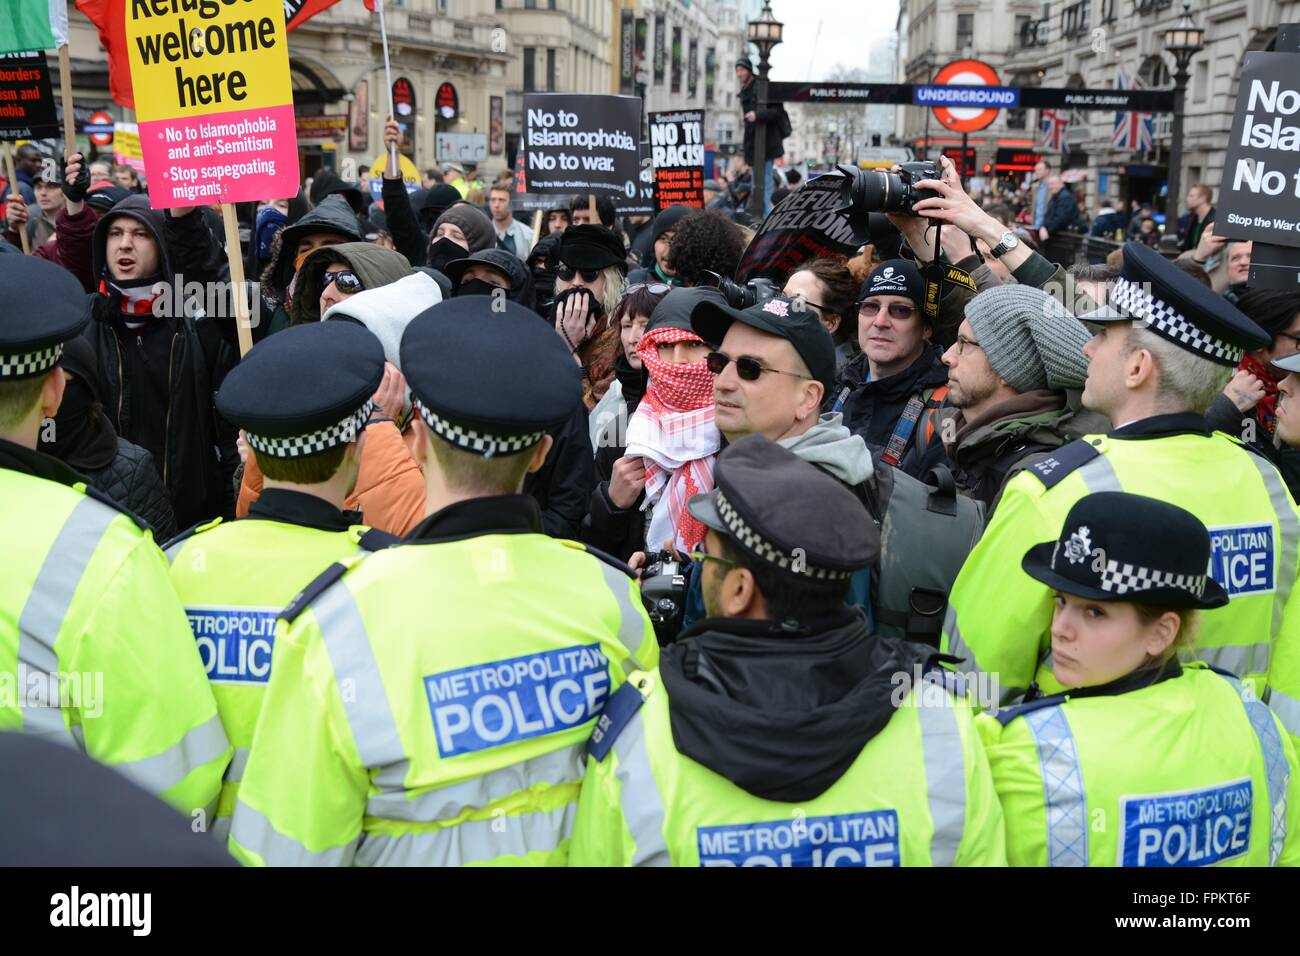 London, UK. March 19th 2016. Police holding the cordon between anti-Fascists and Britain First. Credit:  Marc Ward/Alamy - Stock Image